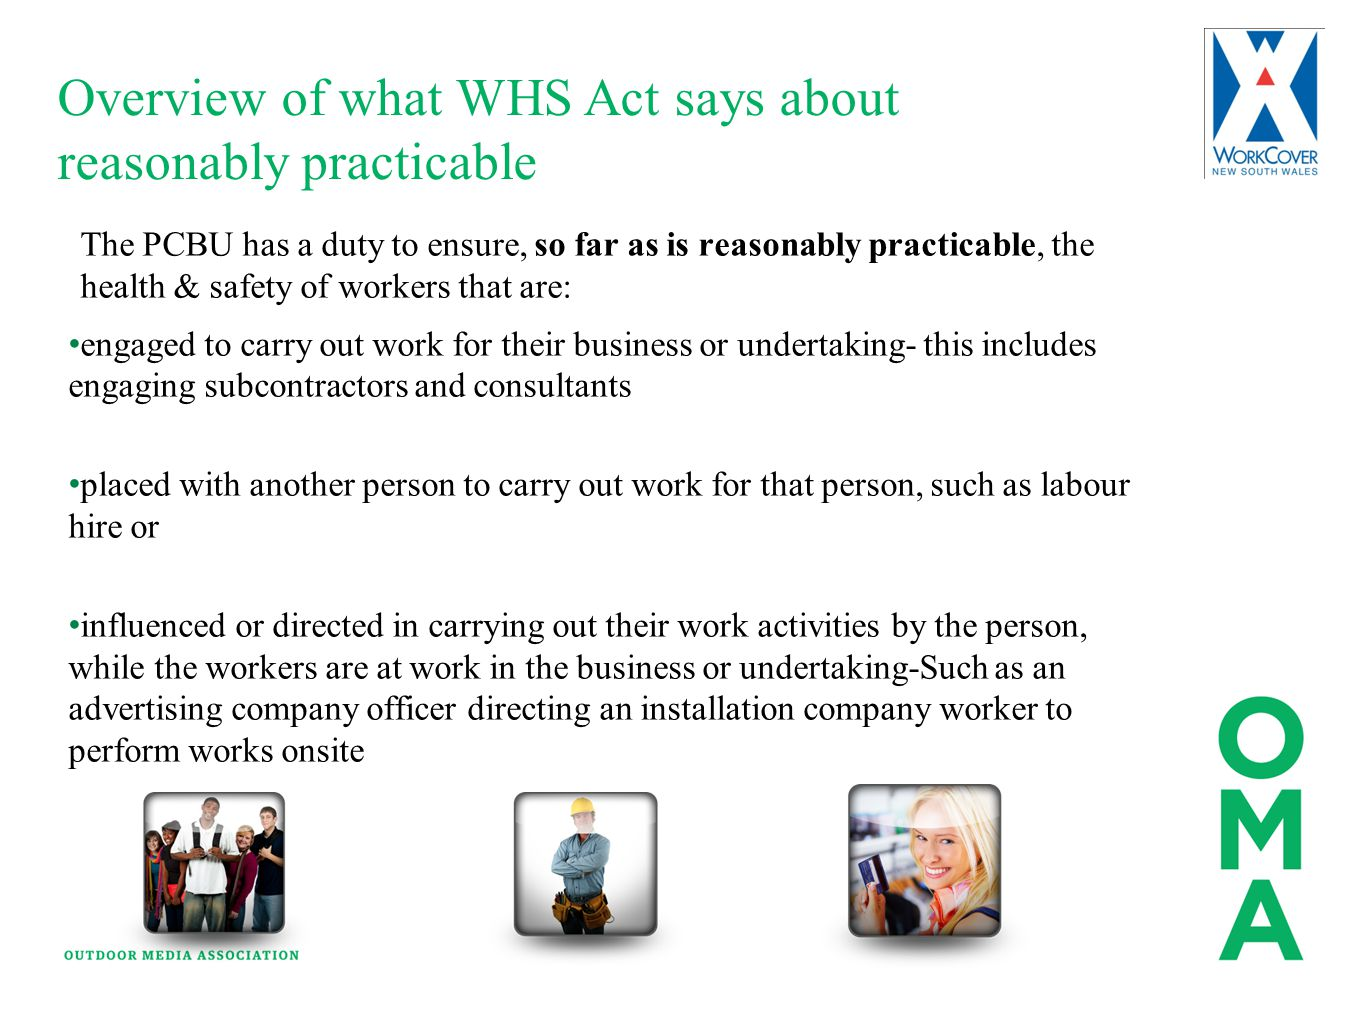 Overview of what WHS Act says about reasonably practicable